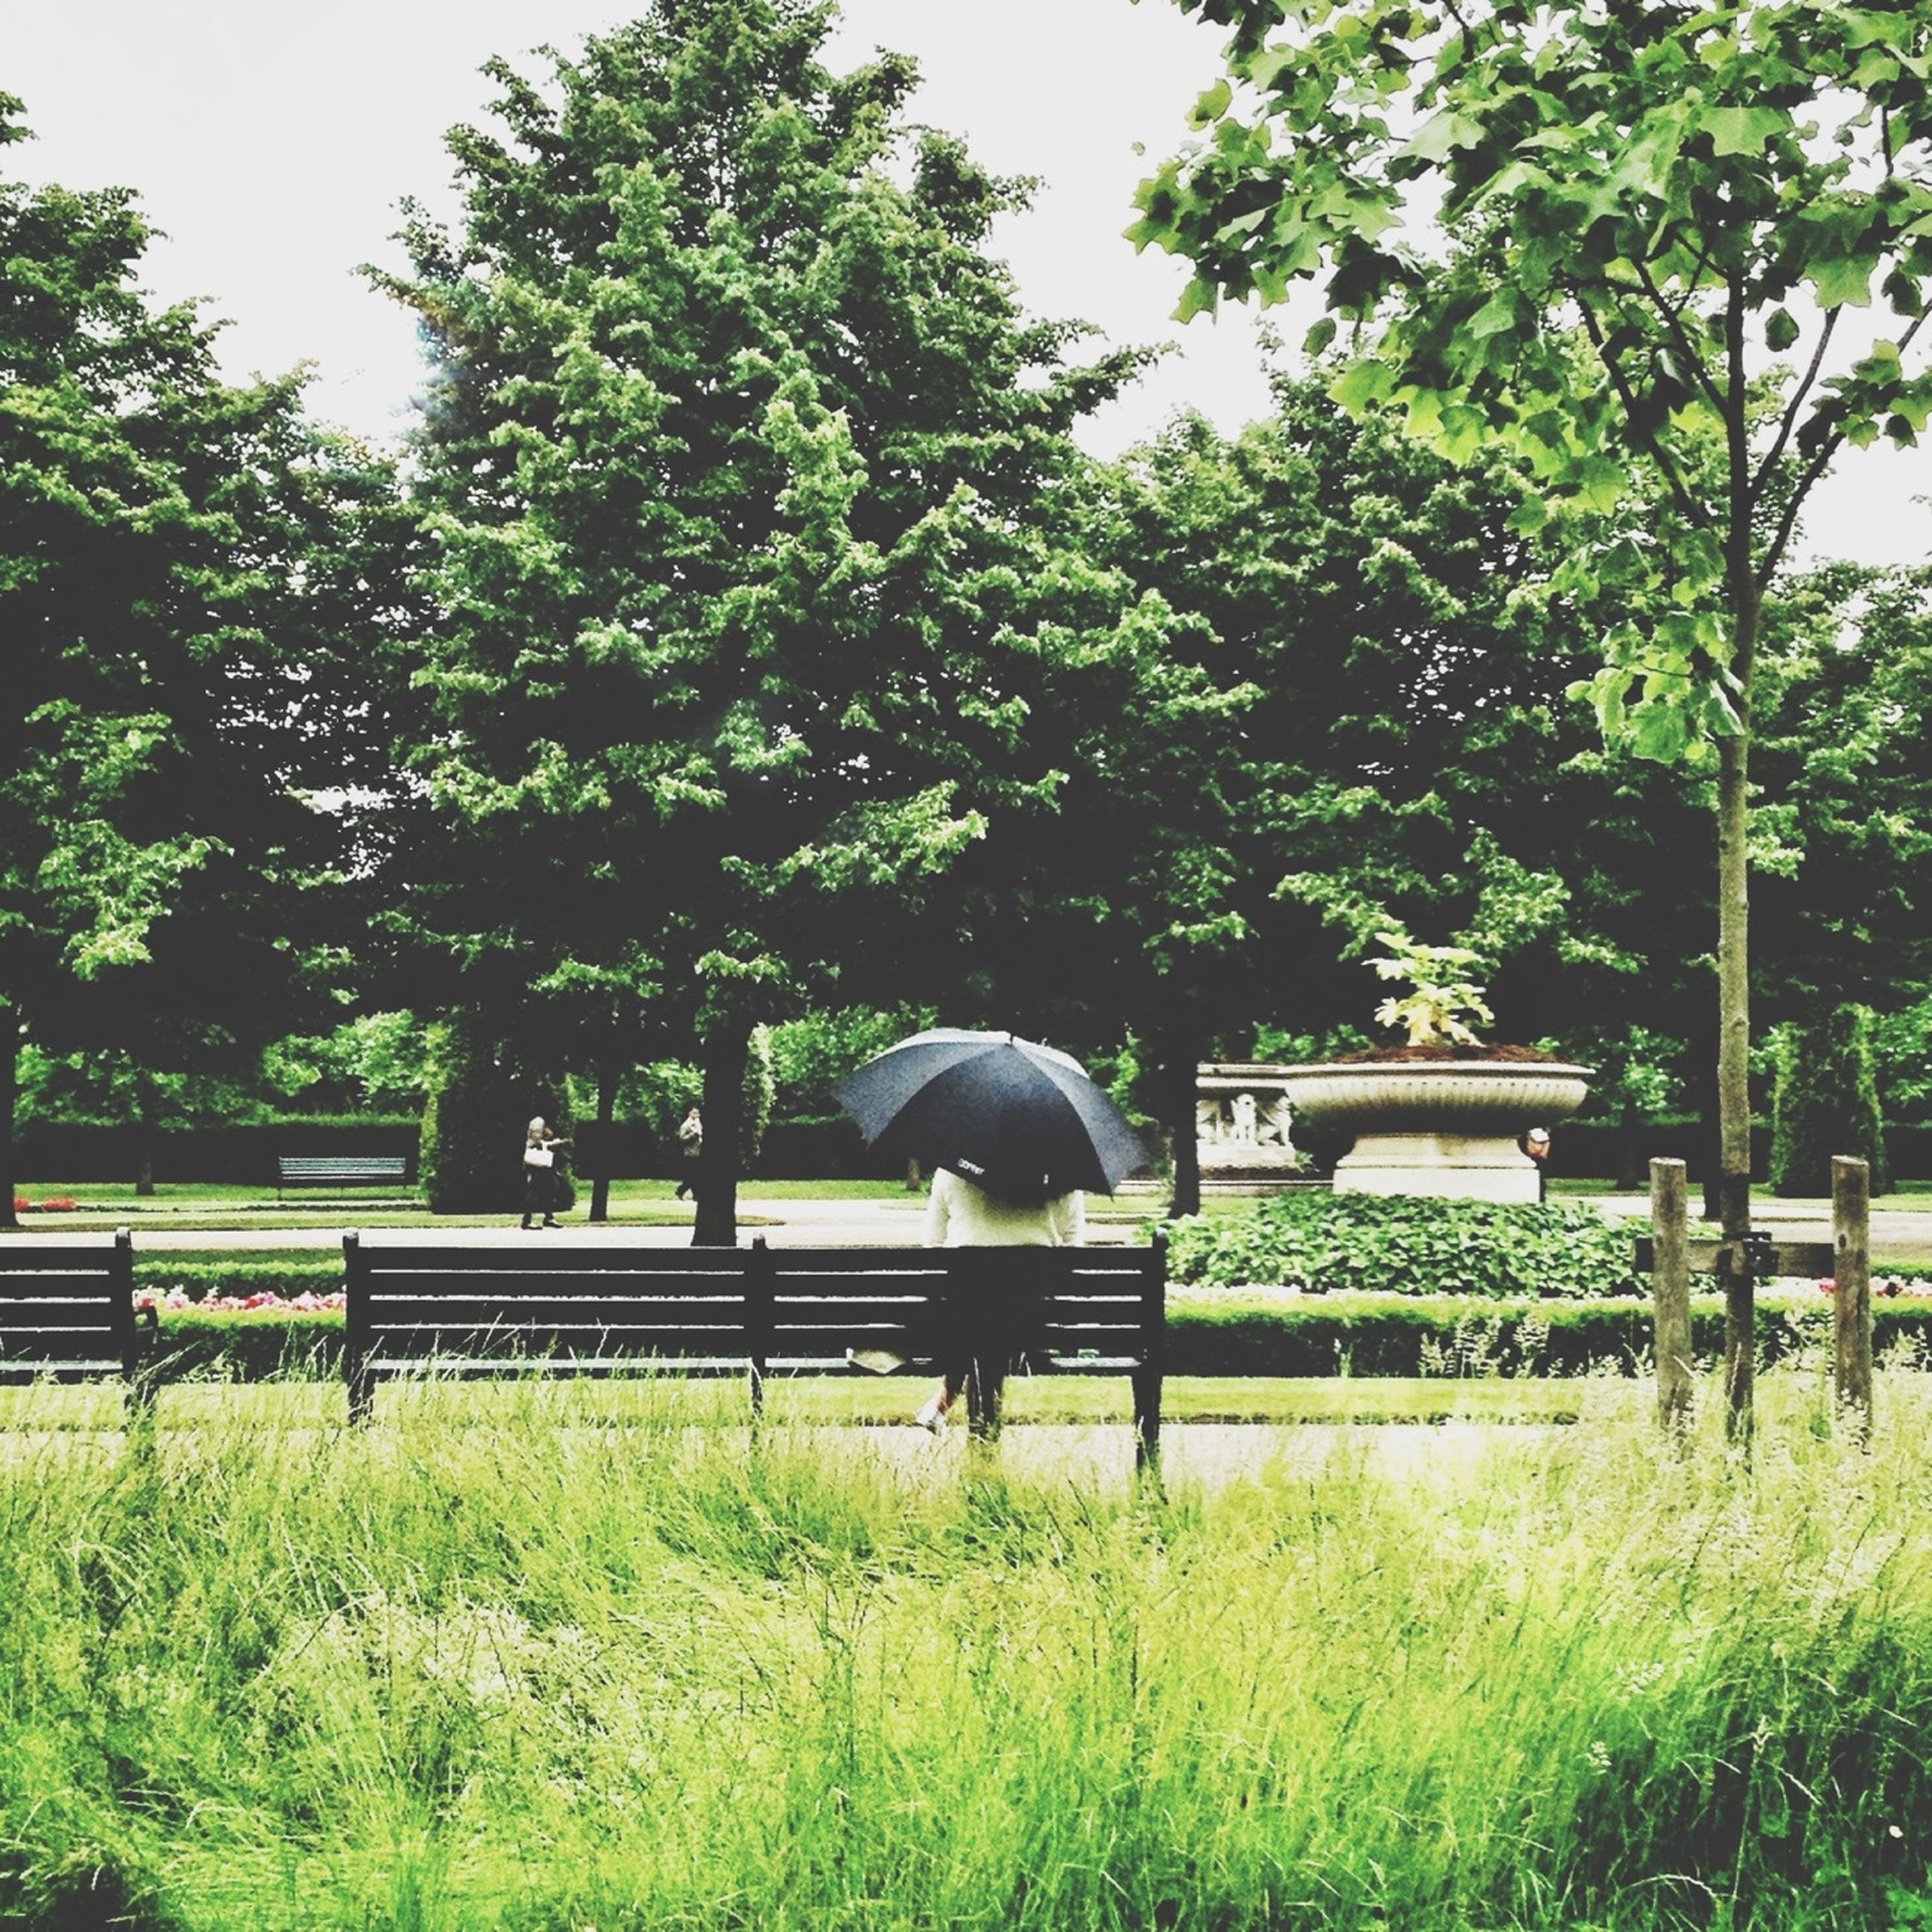 tree, grass, green color, growth, full length, rear view, park - man made space, bench, sitting, nature, plant, men, field, day, relaxation, lifestyles, person, leisure activity